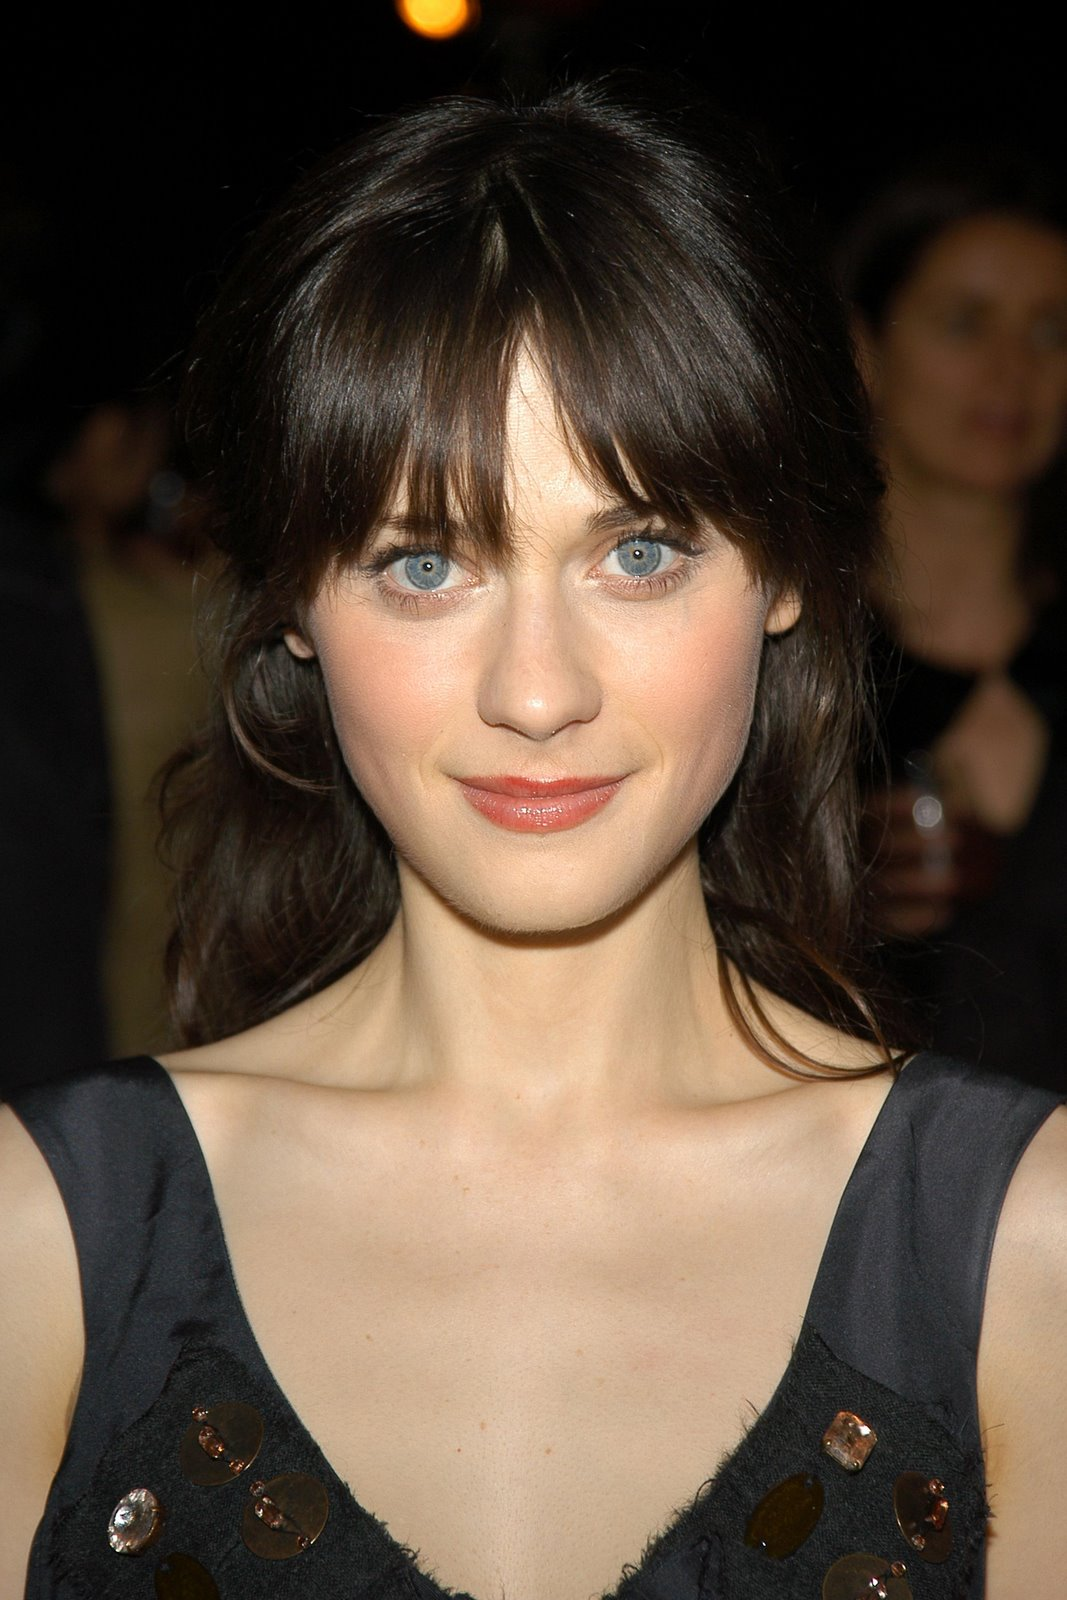 Zooey Deschanel - New Photos